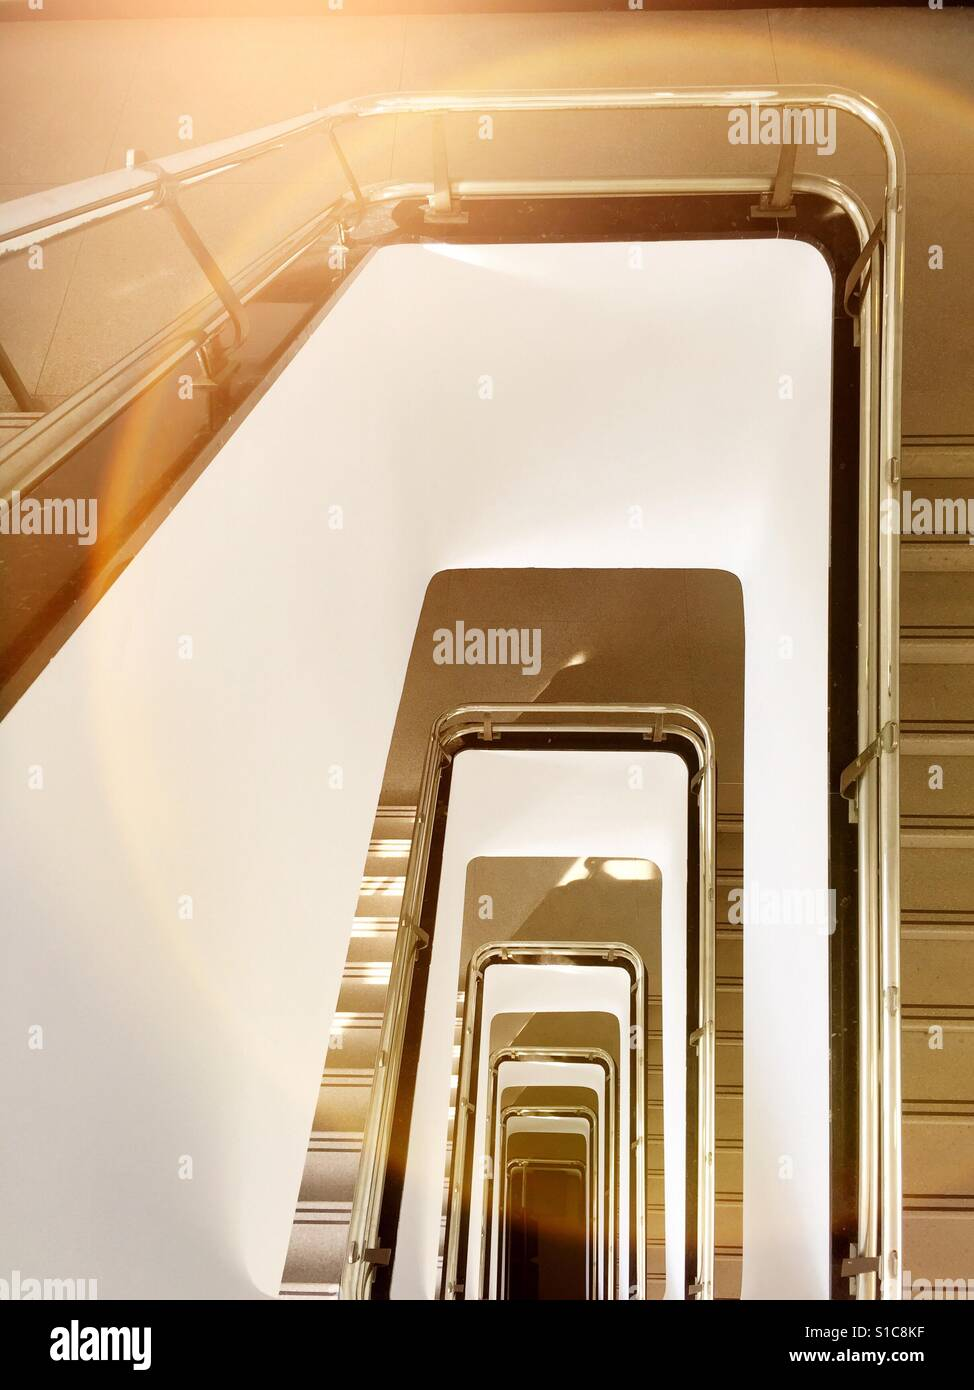 Stairwell of multi story building, USA - Stock Image